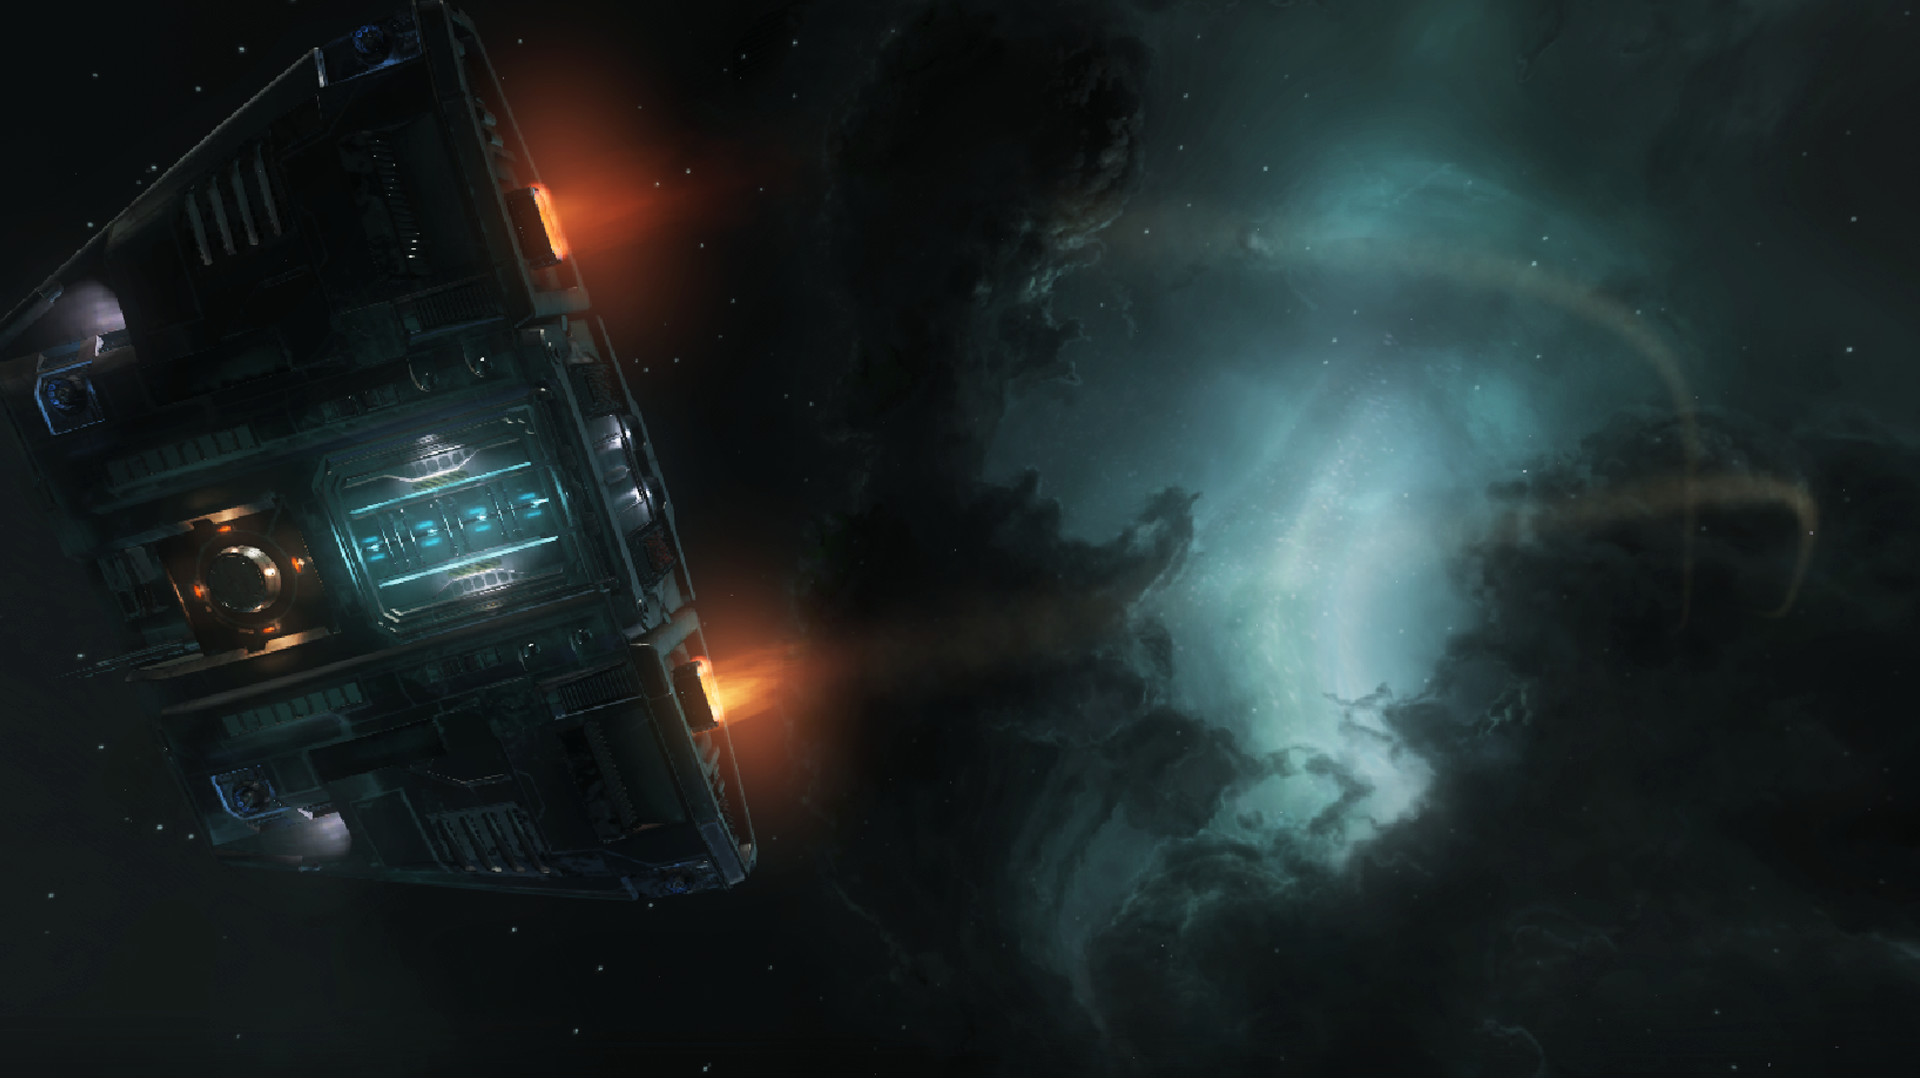 1920x1080 ELITE DANGEROUS sci-fi spaceship game rs wallpaper |  | 167512 |  WallpaperUP